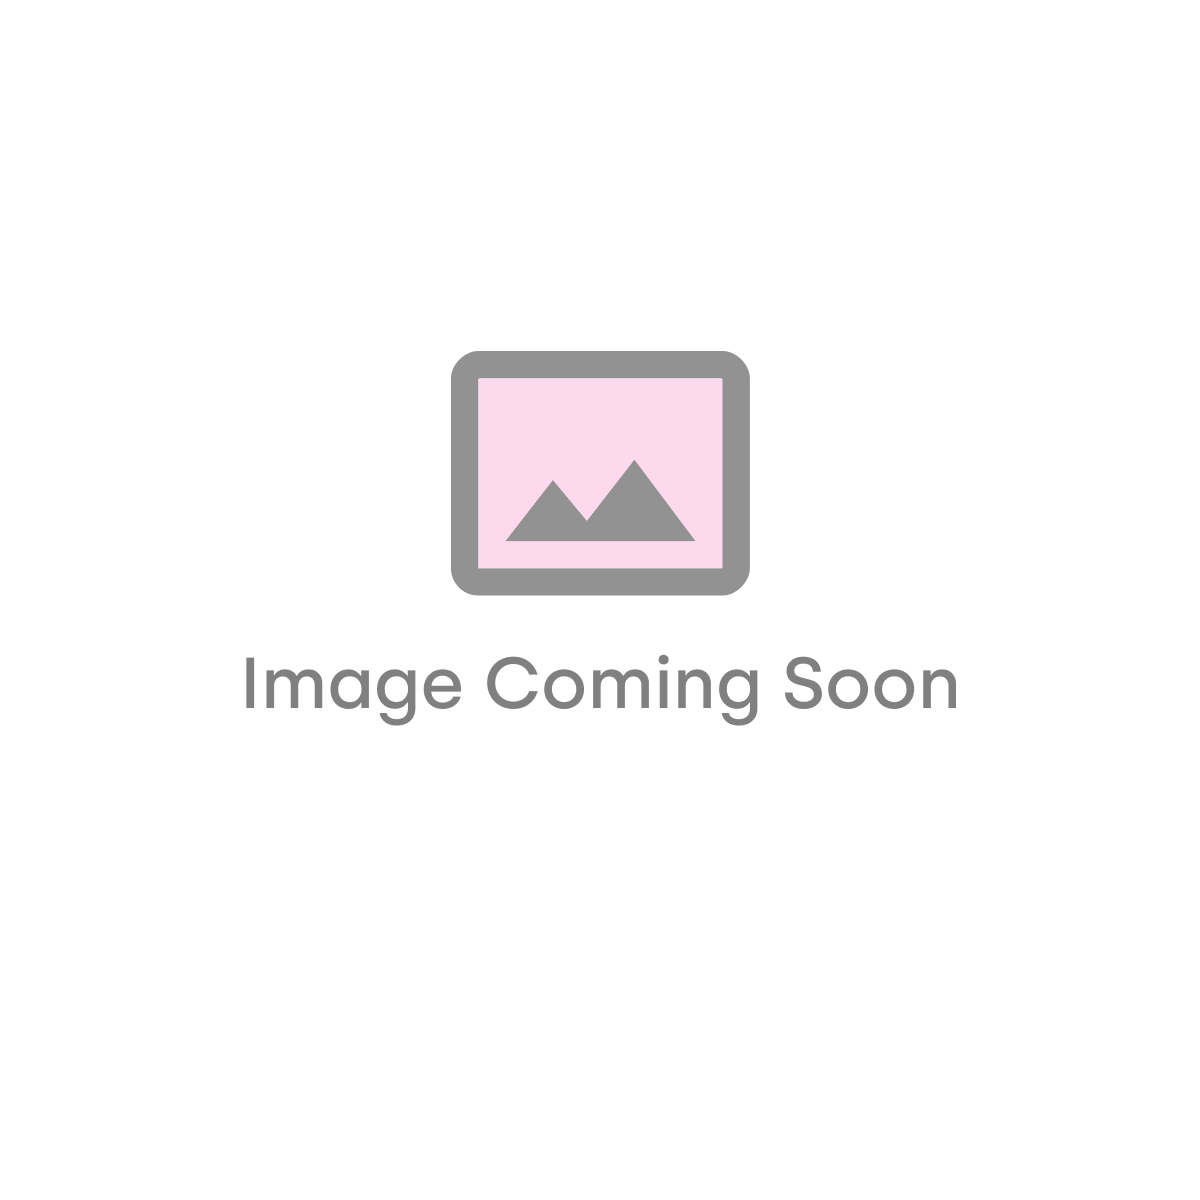 Marbella Rimless Fully BTW Comfort Height WC & Cistern  (15089)